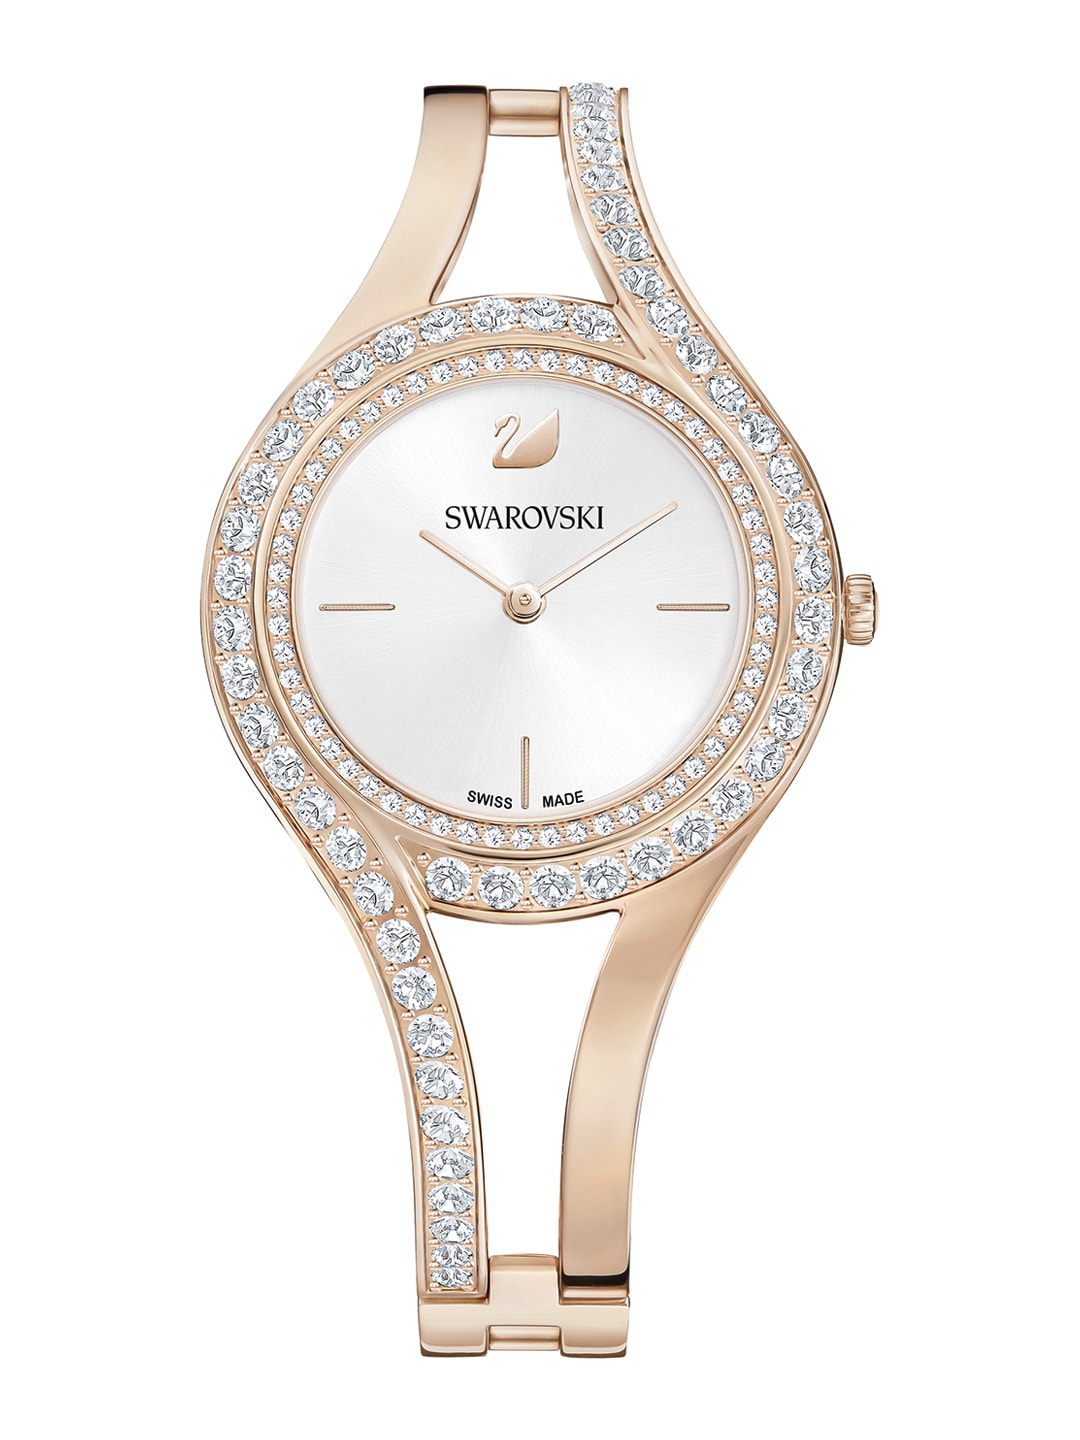 d6e23ab2188 Rs 50 99 Watches Perfume And Body Mist - Buy Rs 50 99 Watches Perfume And Body  Mist online in India